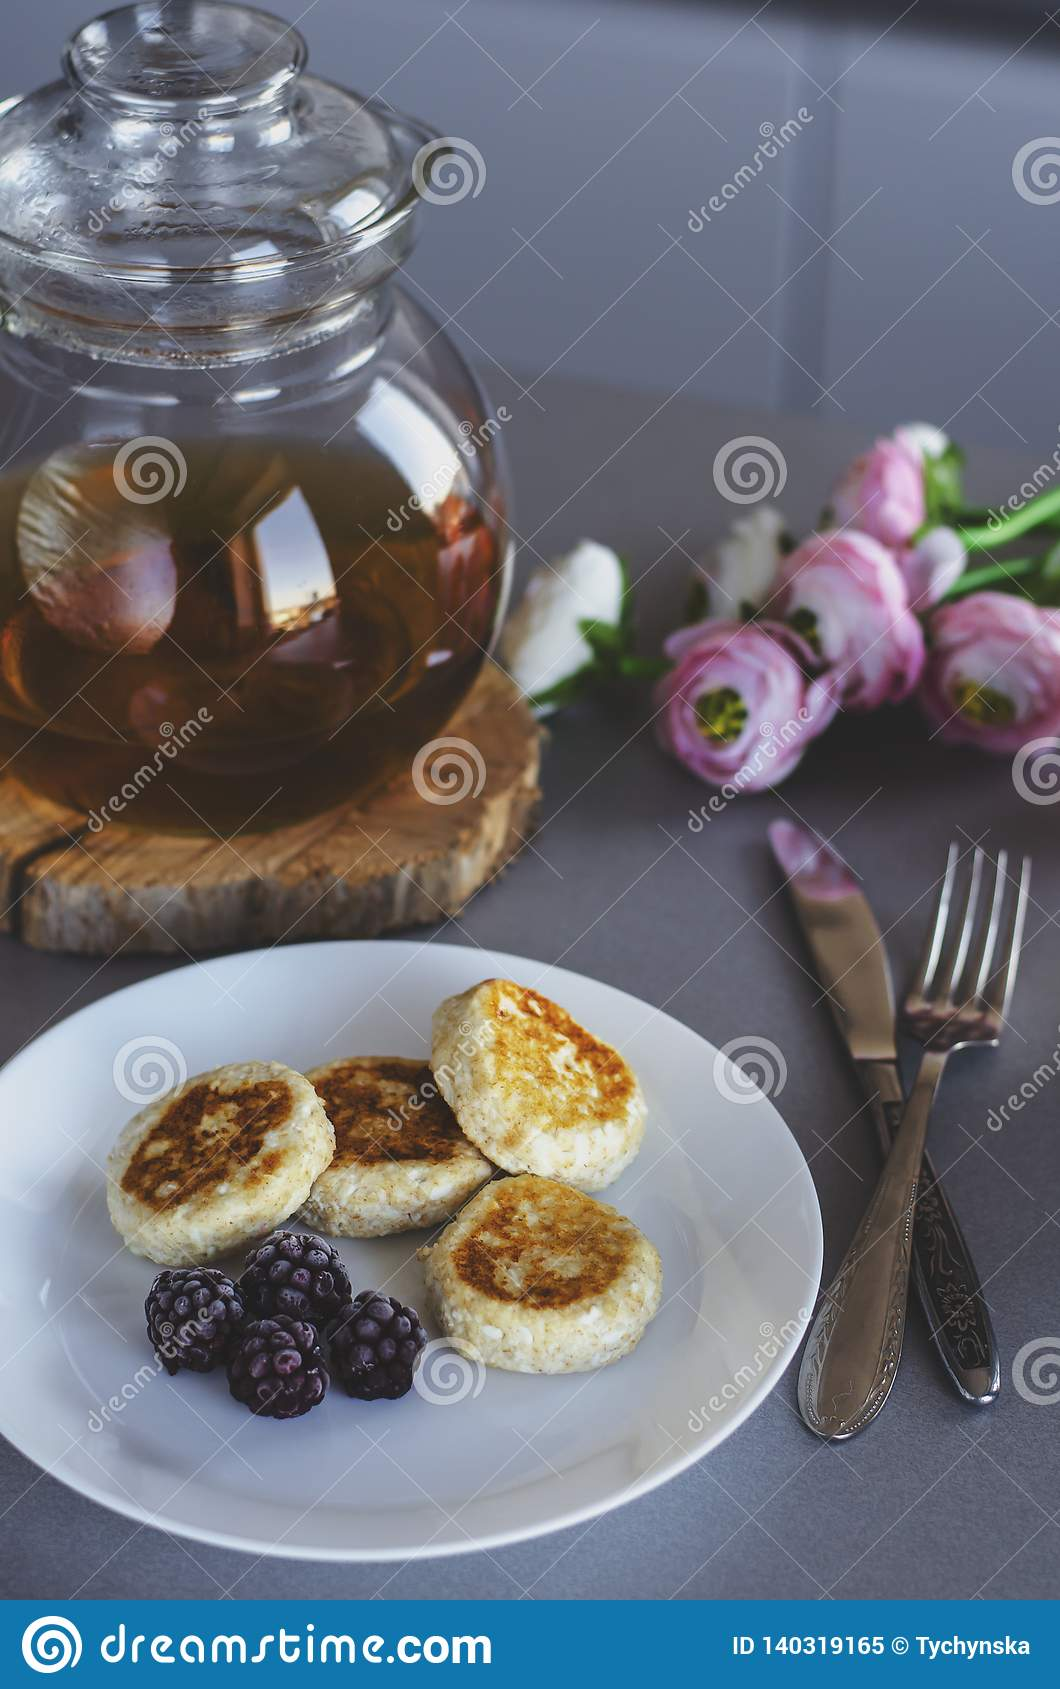 Ideal Breakfast For Healthy Lifestyle Stock Image - Image of